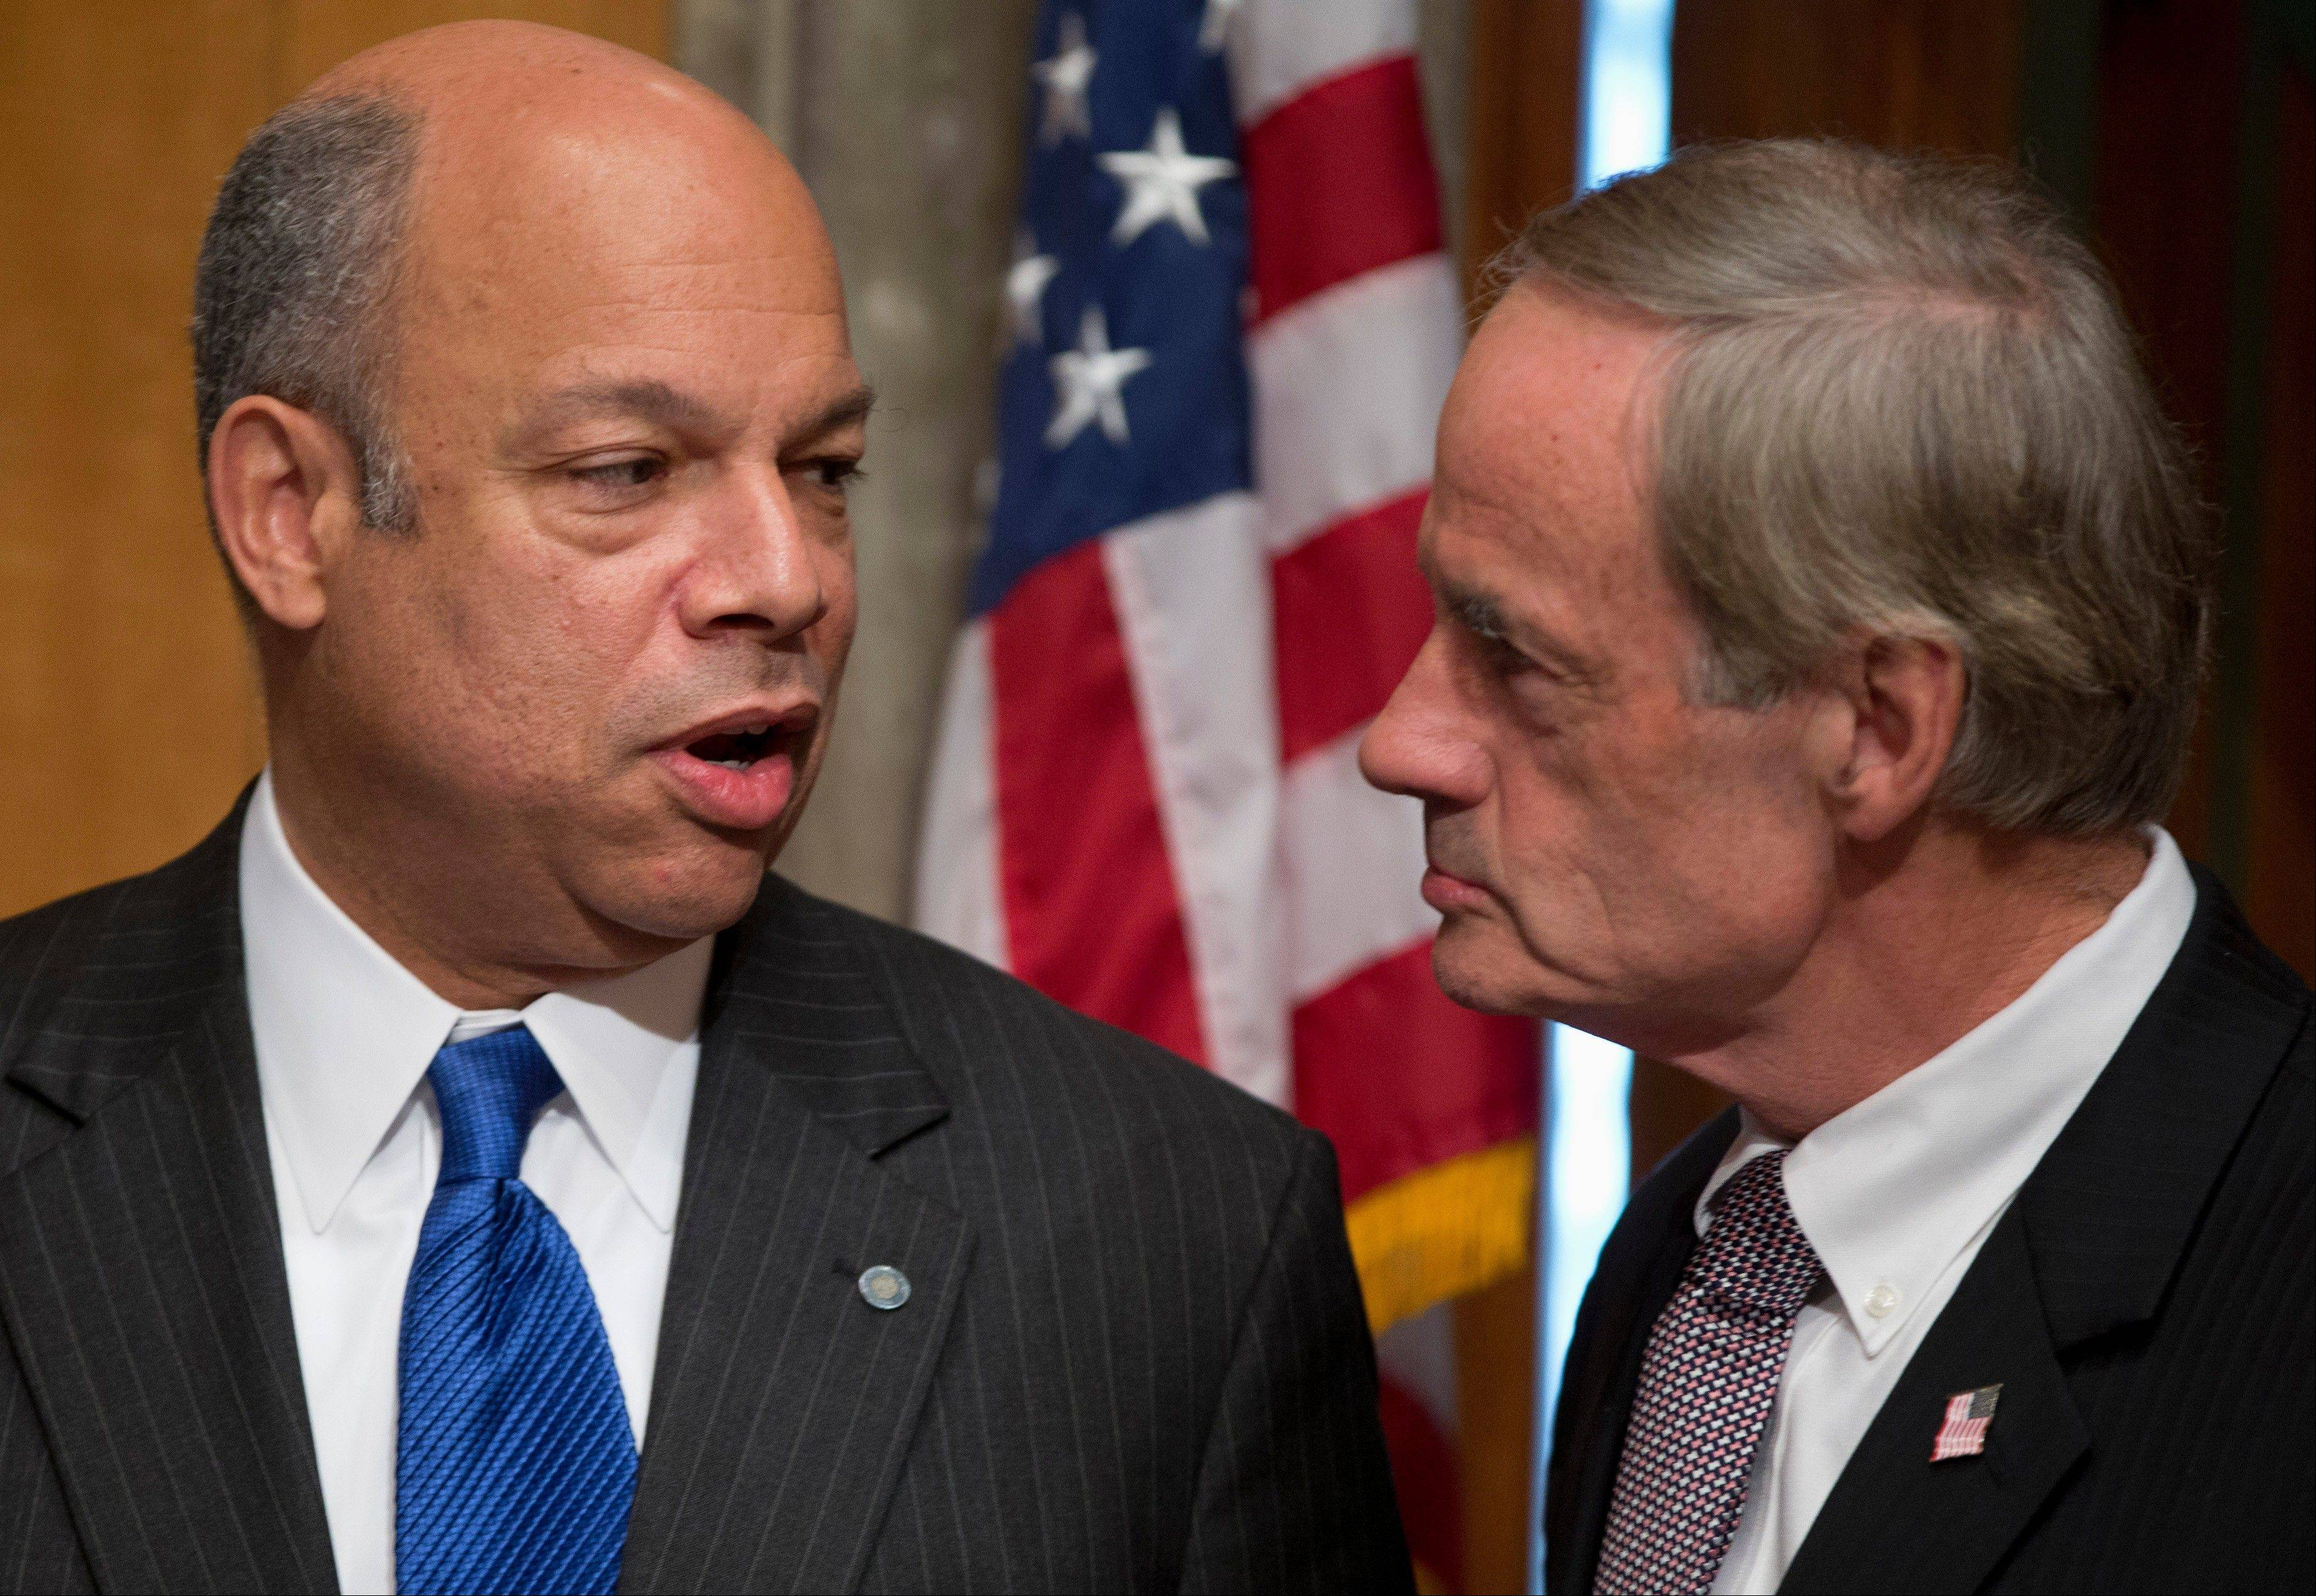 Jeh Johnson, President Barack Obama�s choice to become Homeland Security Secretary, left, talks with Senate Homeland Security and Governmental Affairs Committee Chairman Sen. Thomas Carper, D-Del., on Capitol Hill in Washington, Wednesday, Nov. 13, 2013, before the start of the committee�s hearing Johnson�s nomination.